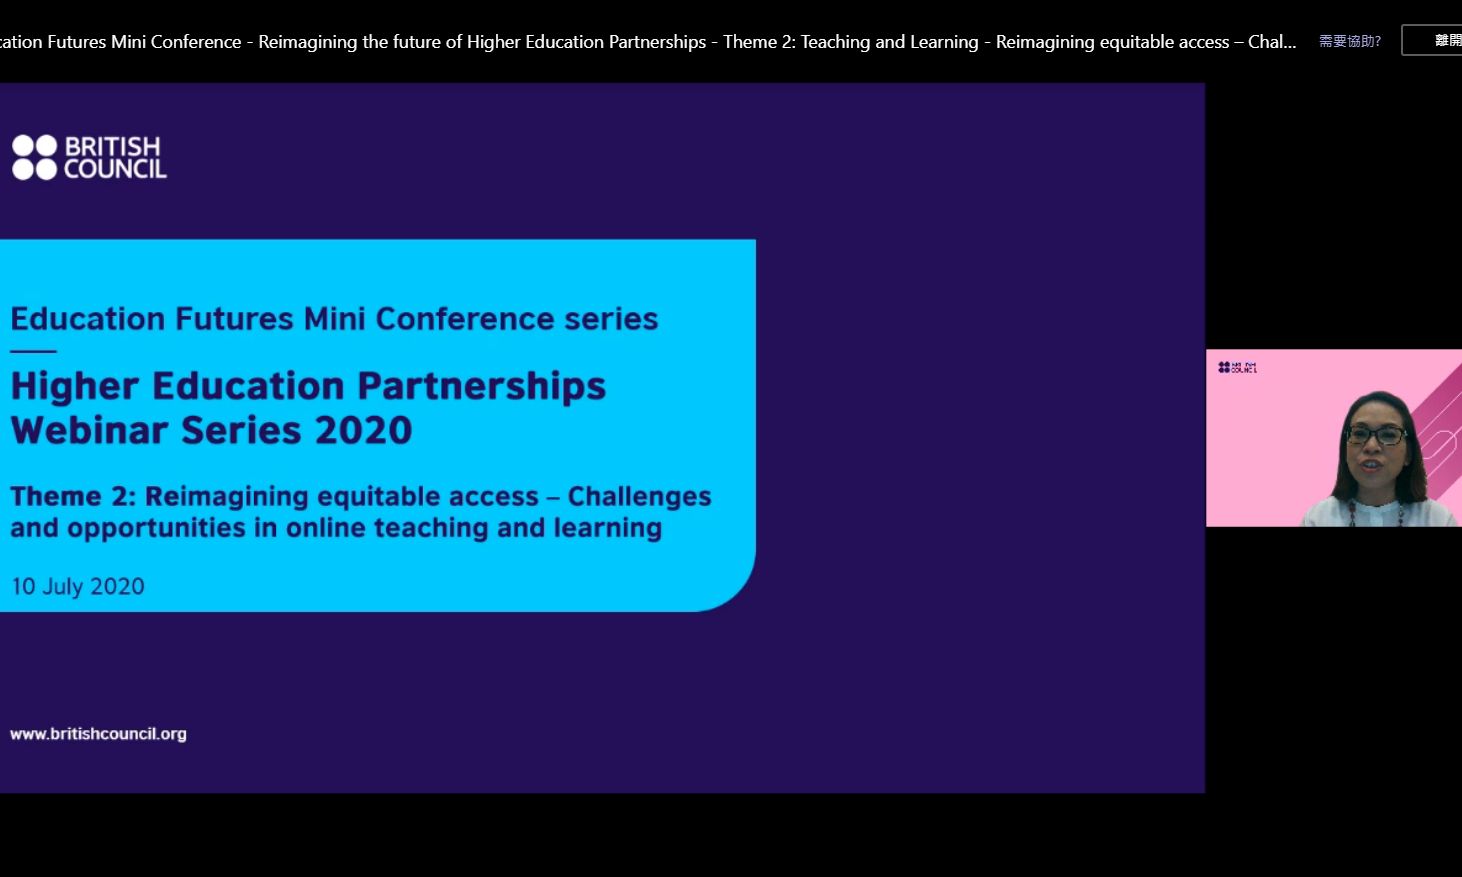 Higher Education Partnership Webinar 2020(Open new window)